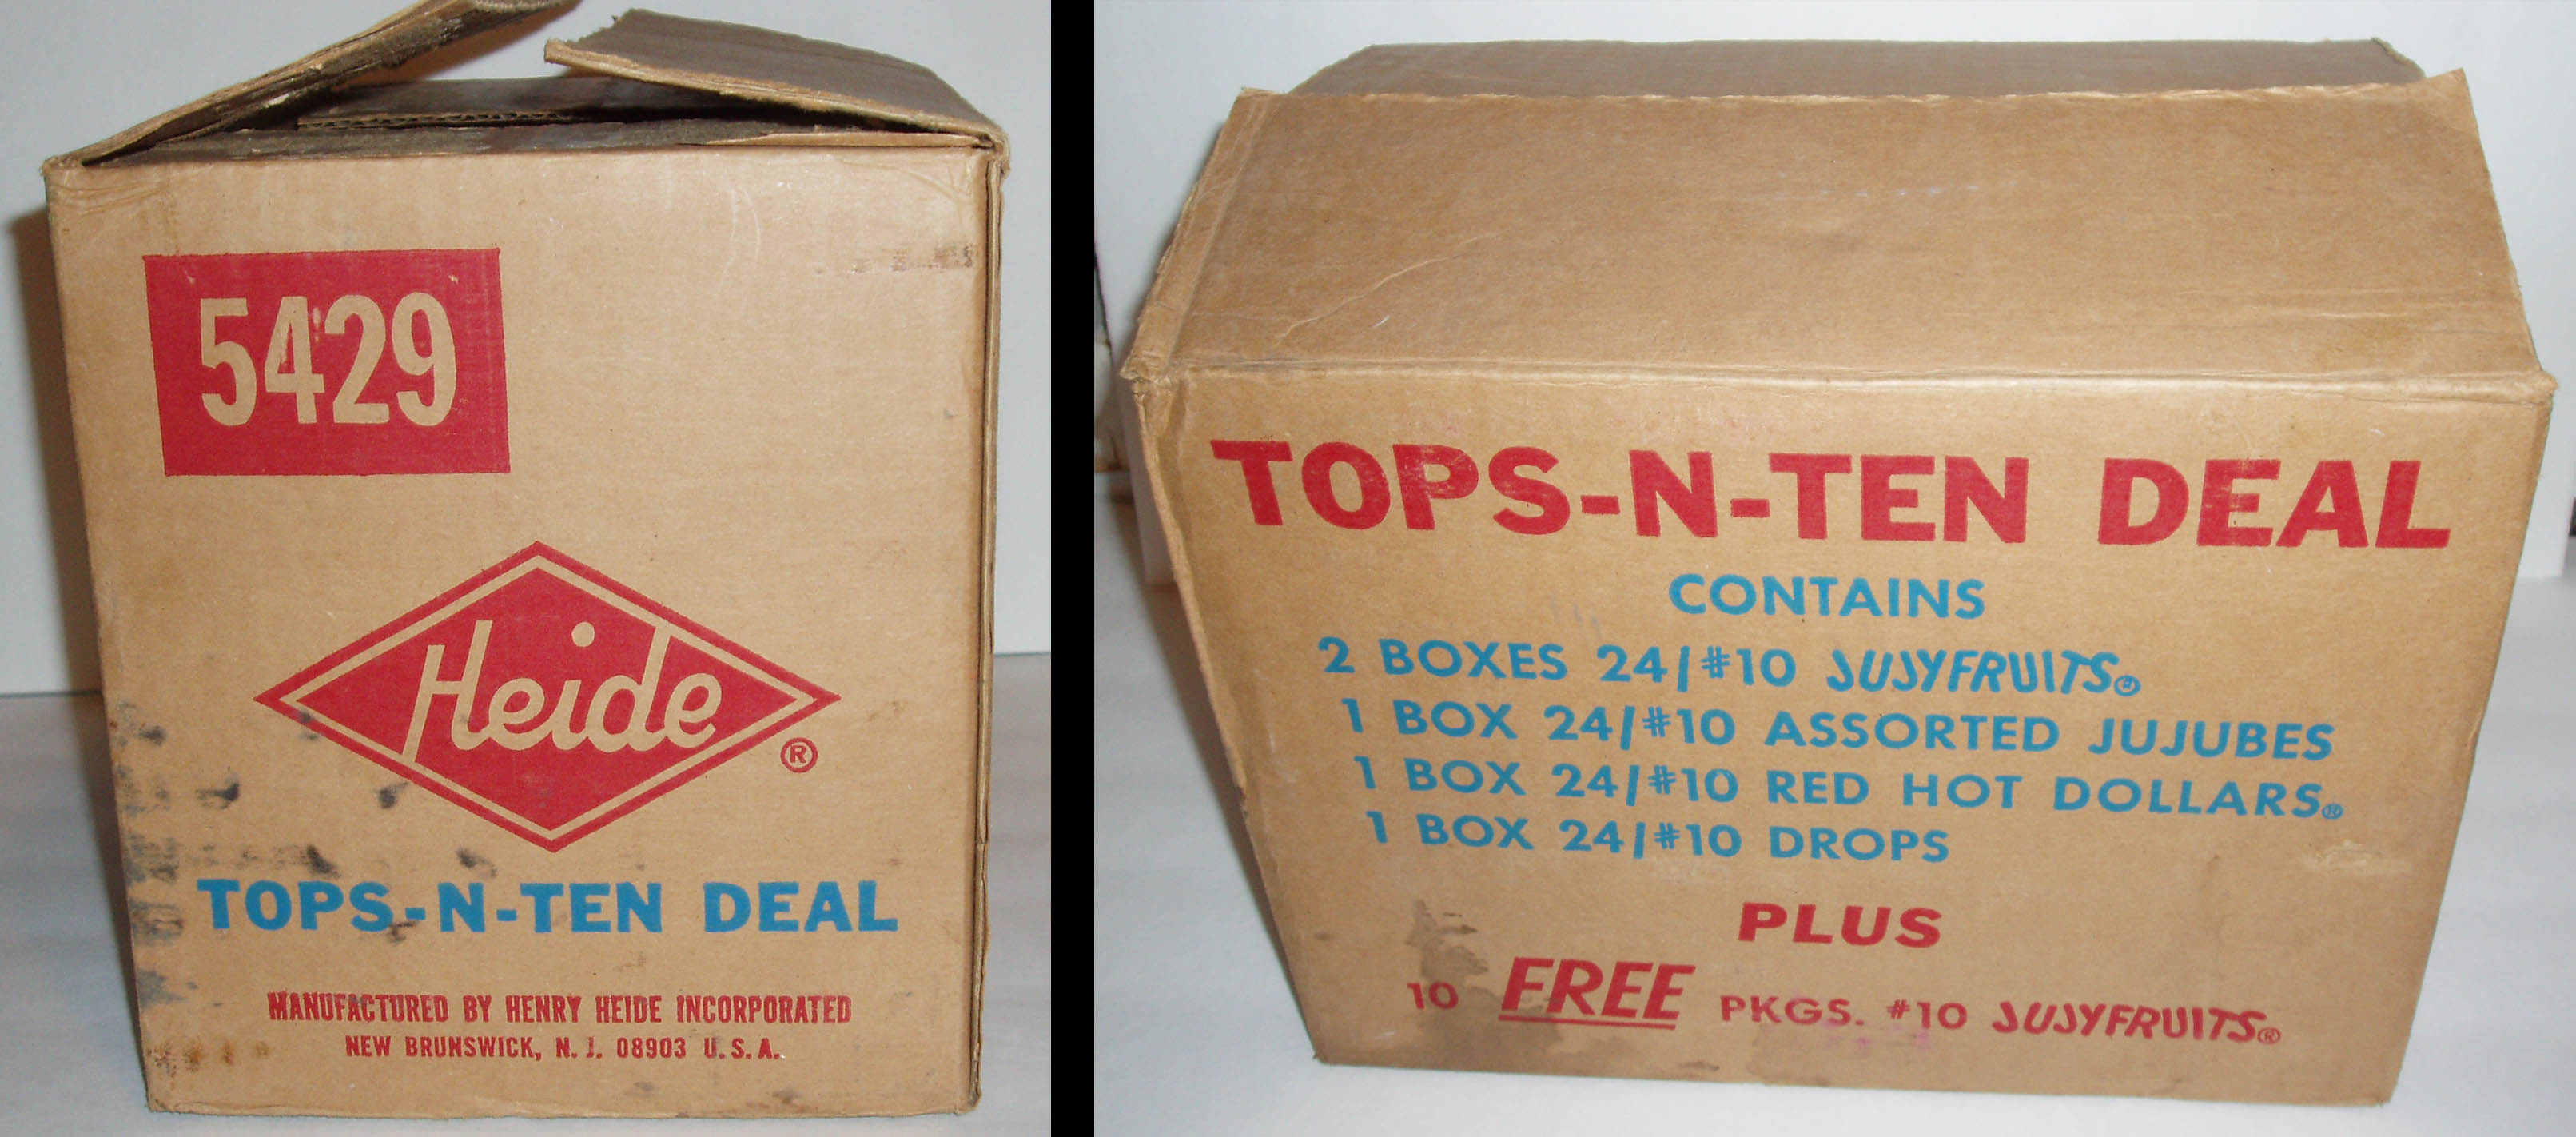 Heide Tops-n-Ten deal shipping box - mid-1970's - image courtesy Dan Goodsell